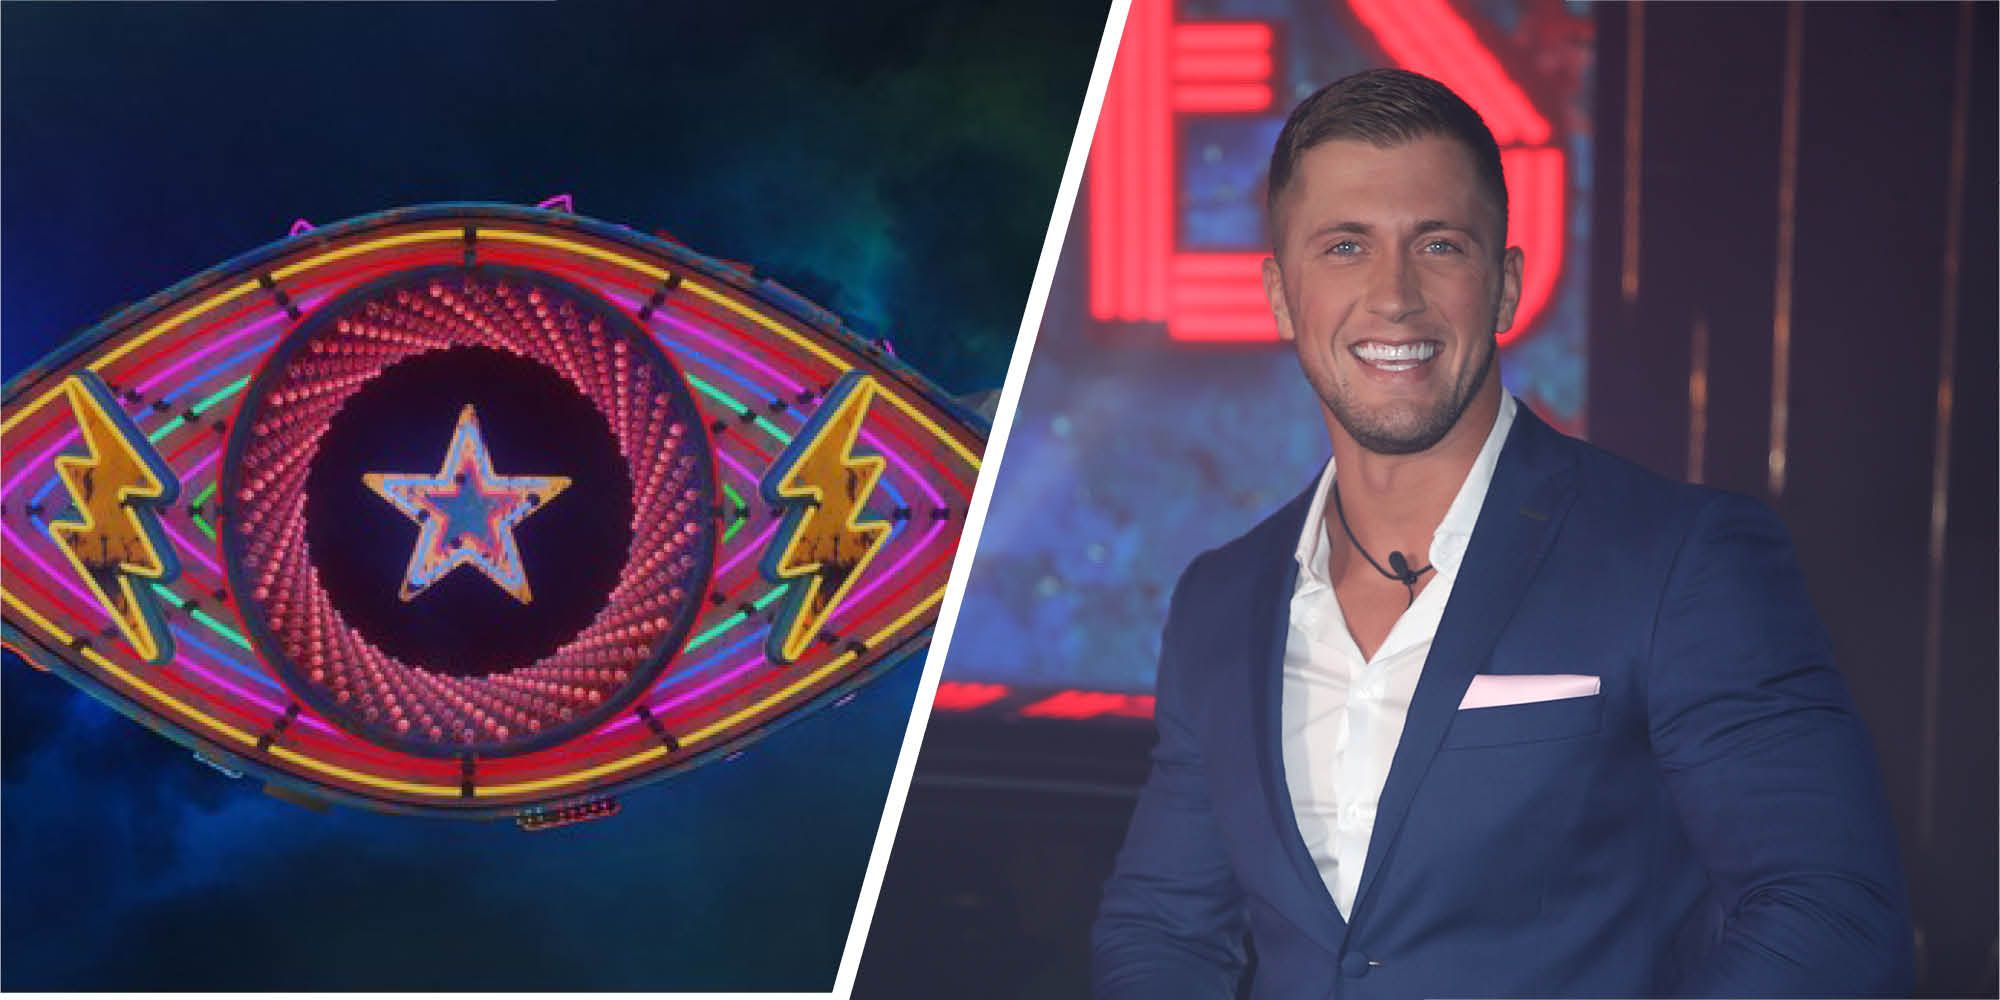 A domestic abuse charity has issued a warning to Celebrity Big Brother